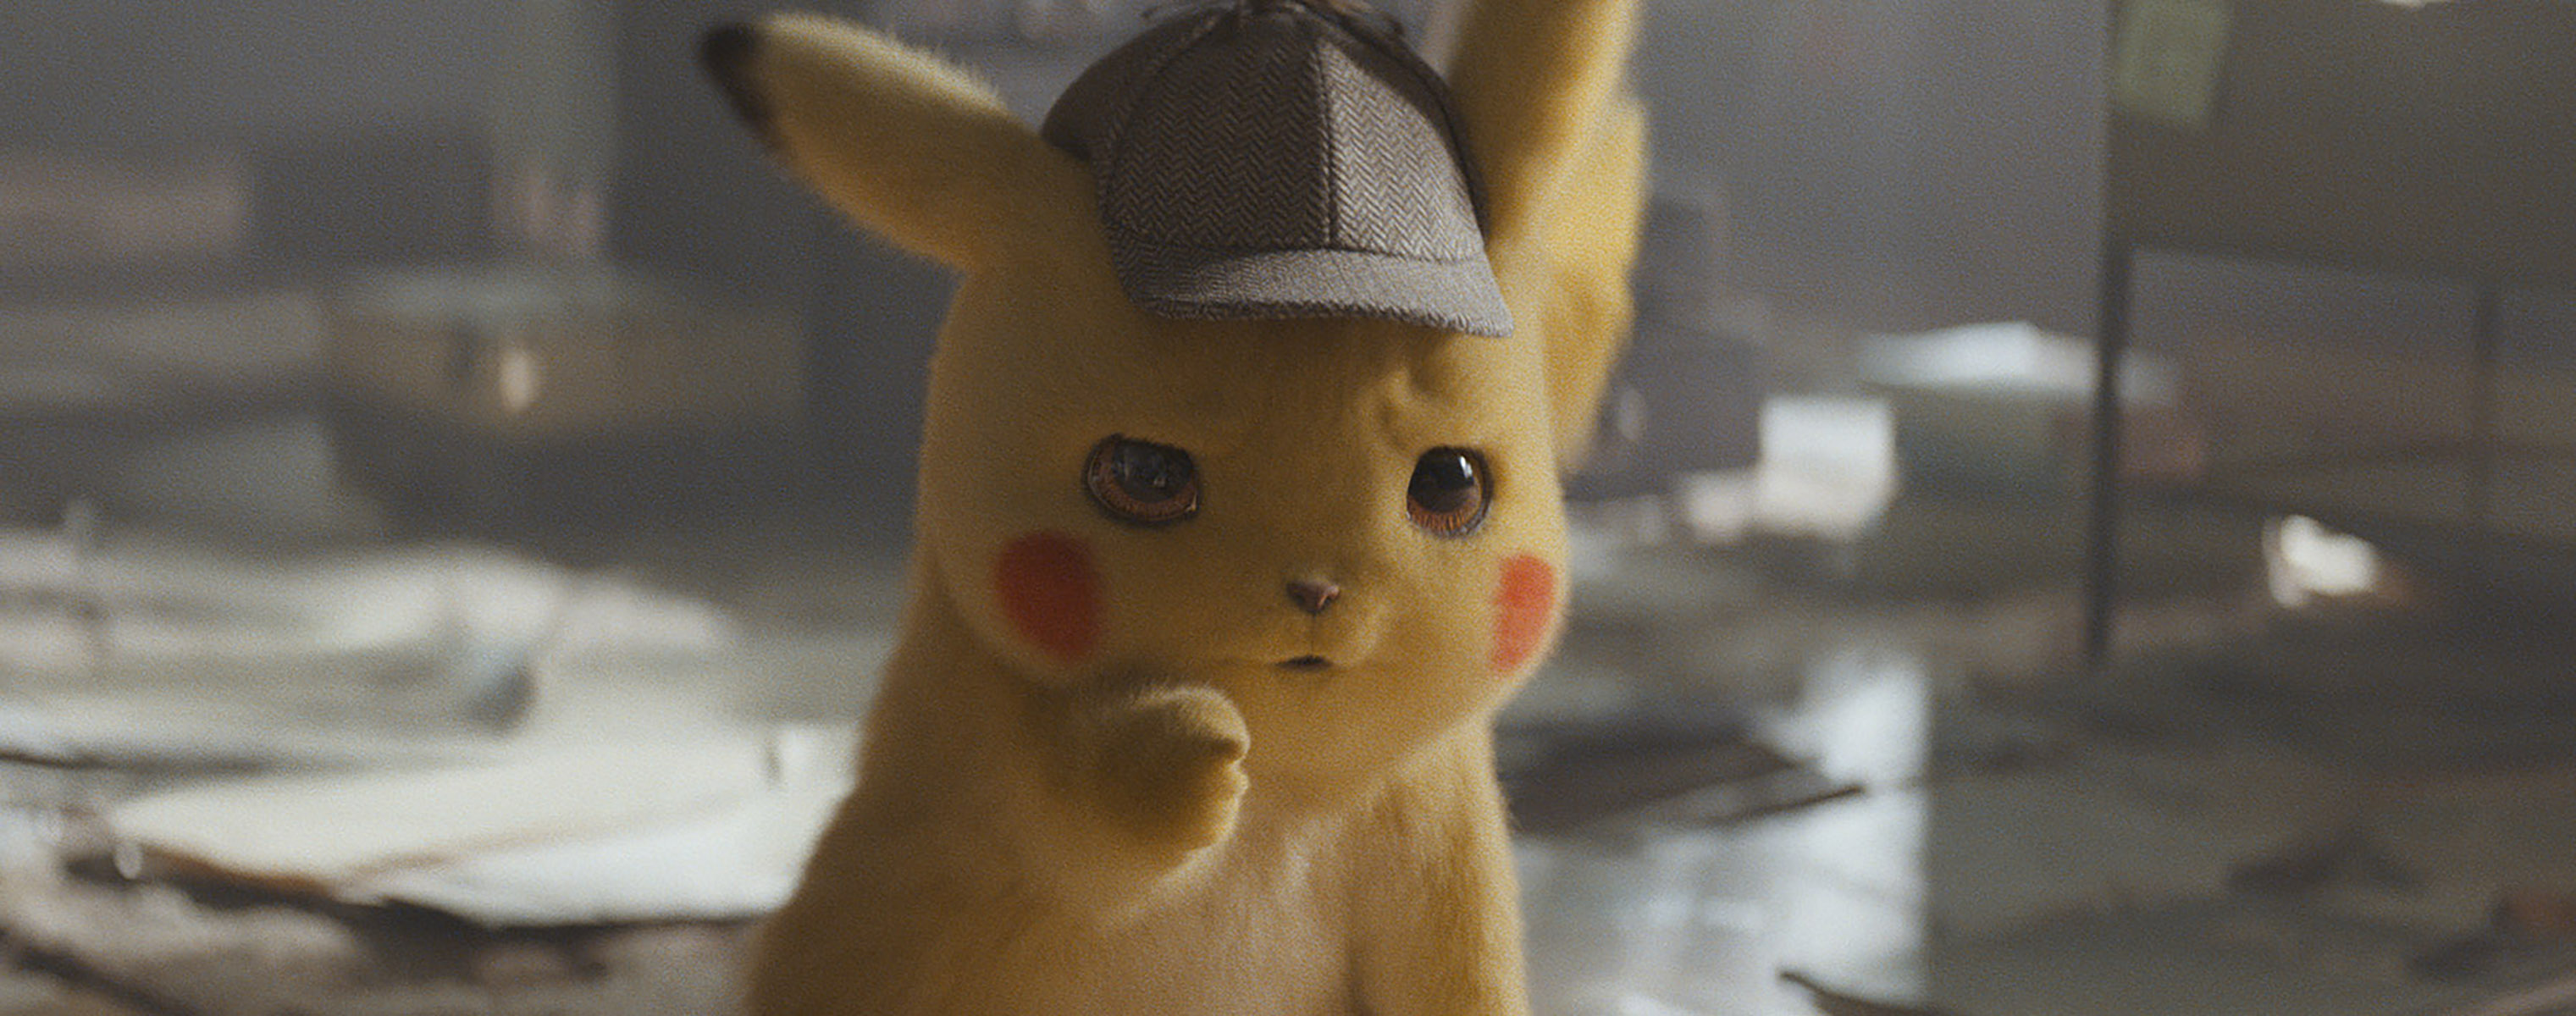 The title character in  Detective Pikachu  (voiced by Ryan Reynolds)